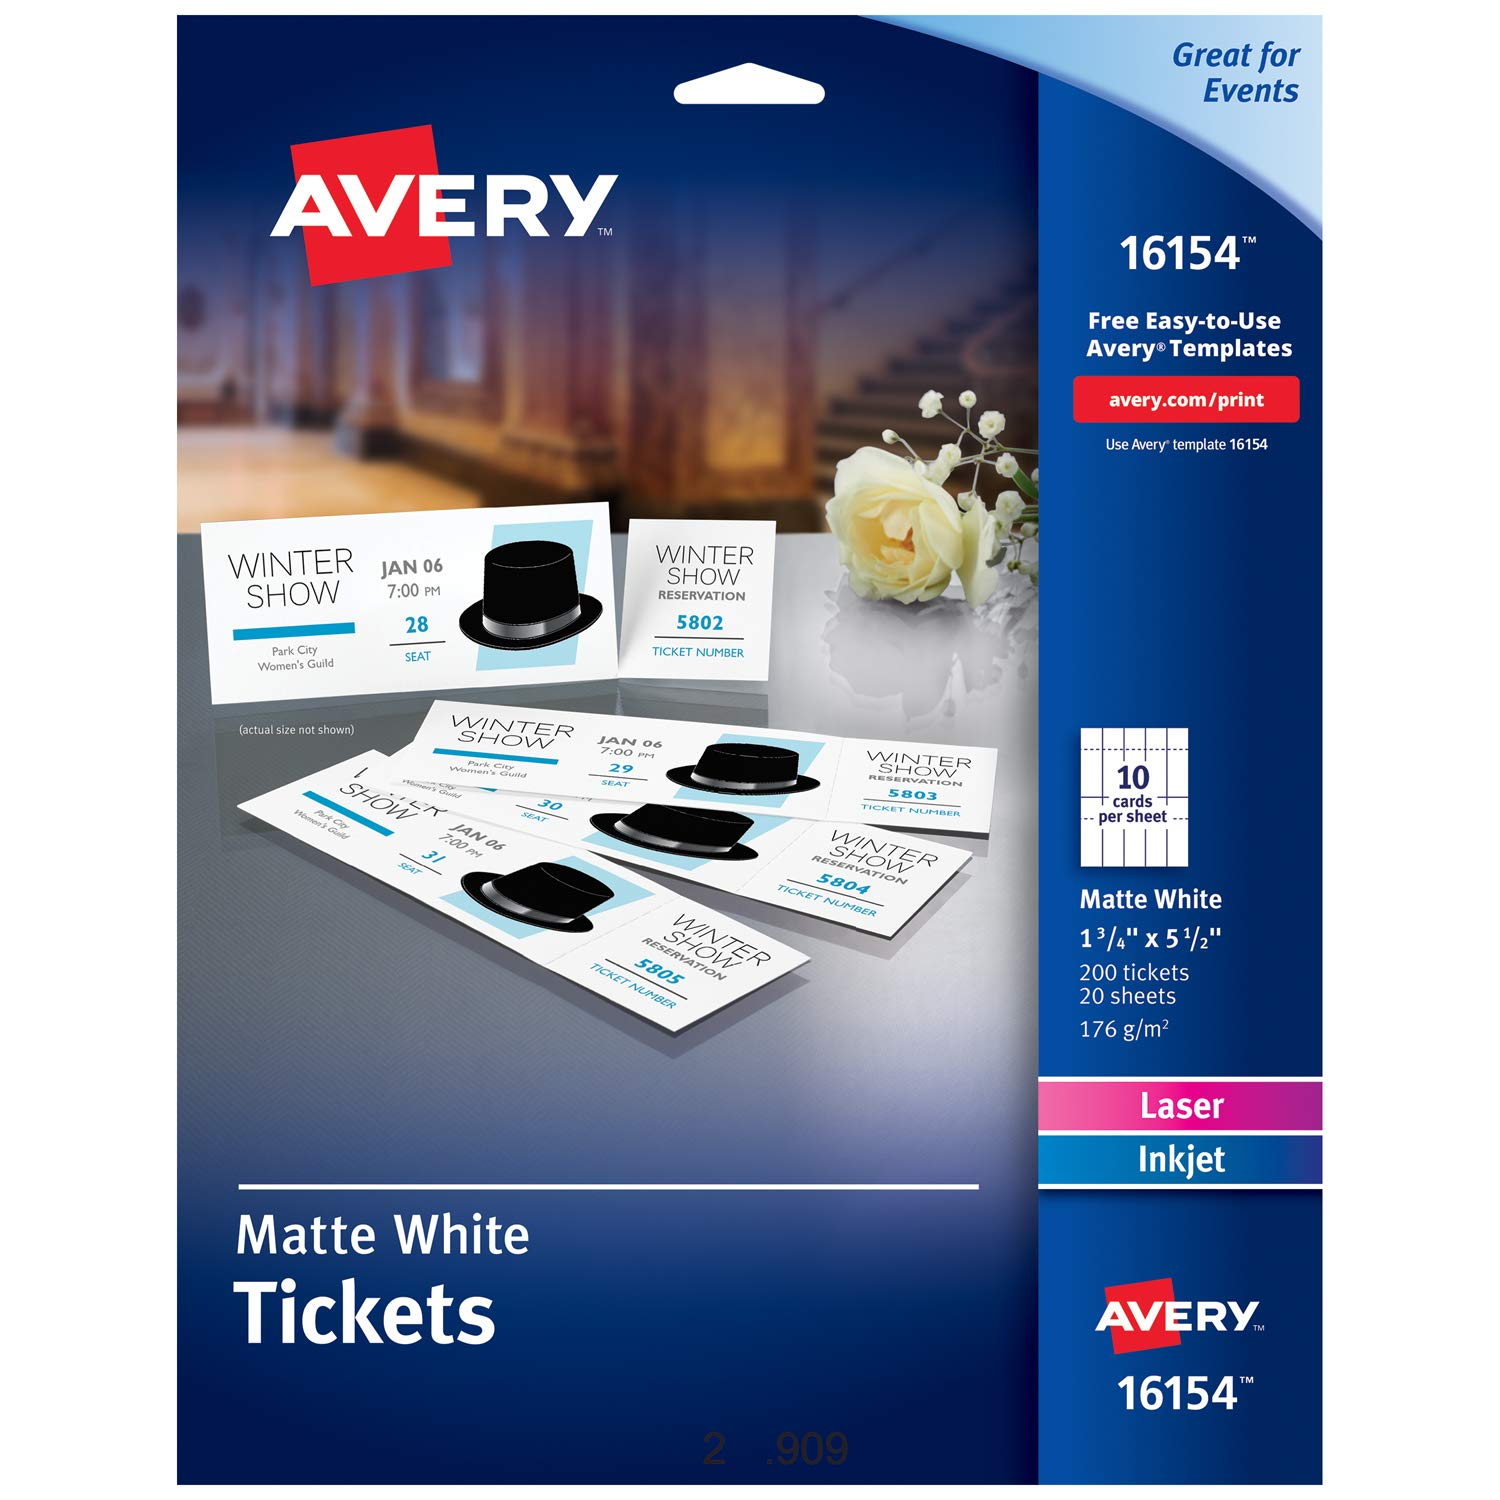 Amazoncom Avery Blank Printable Tickets TearAway Stubs - Templates for raffle tickets 8 per page